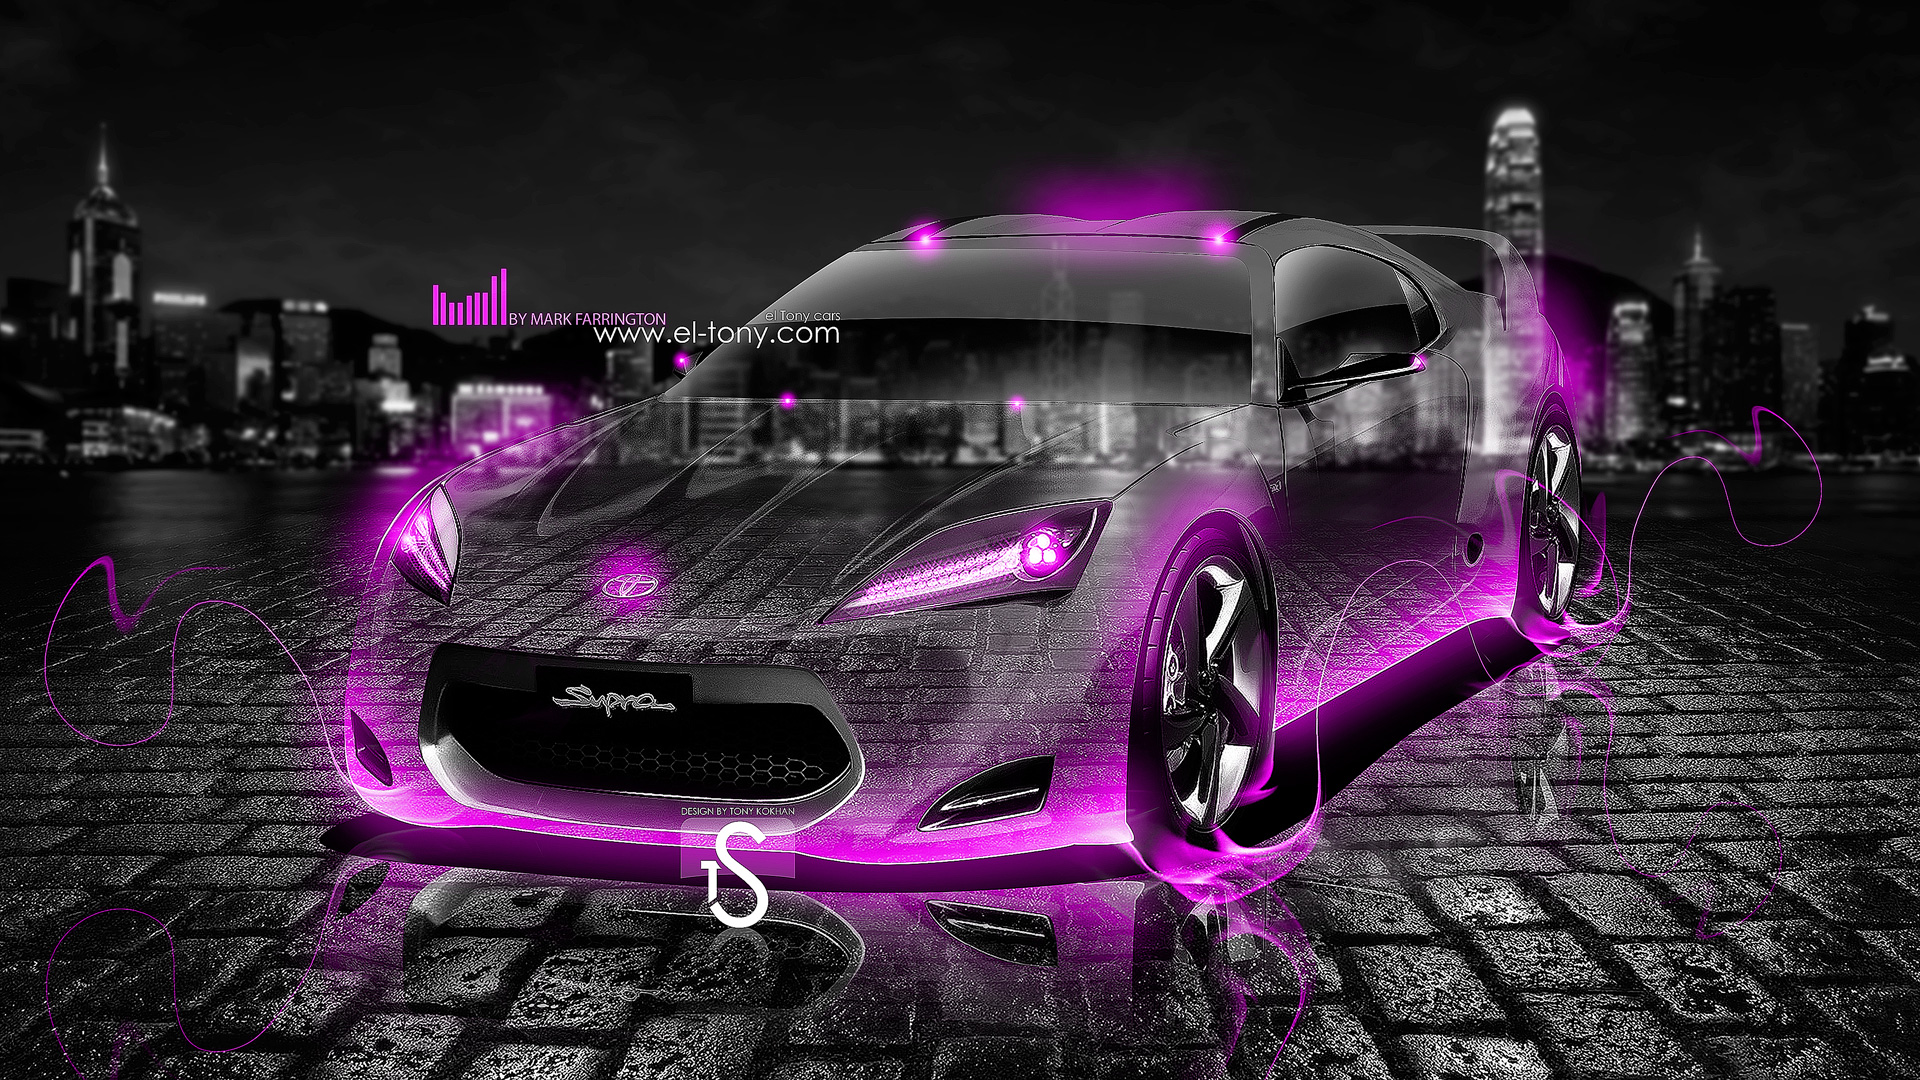 Zedge Car Wallpapers New Toyota Supra Crystal Fire Car 2013 El Tony